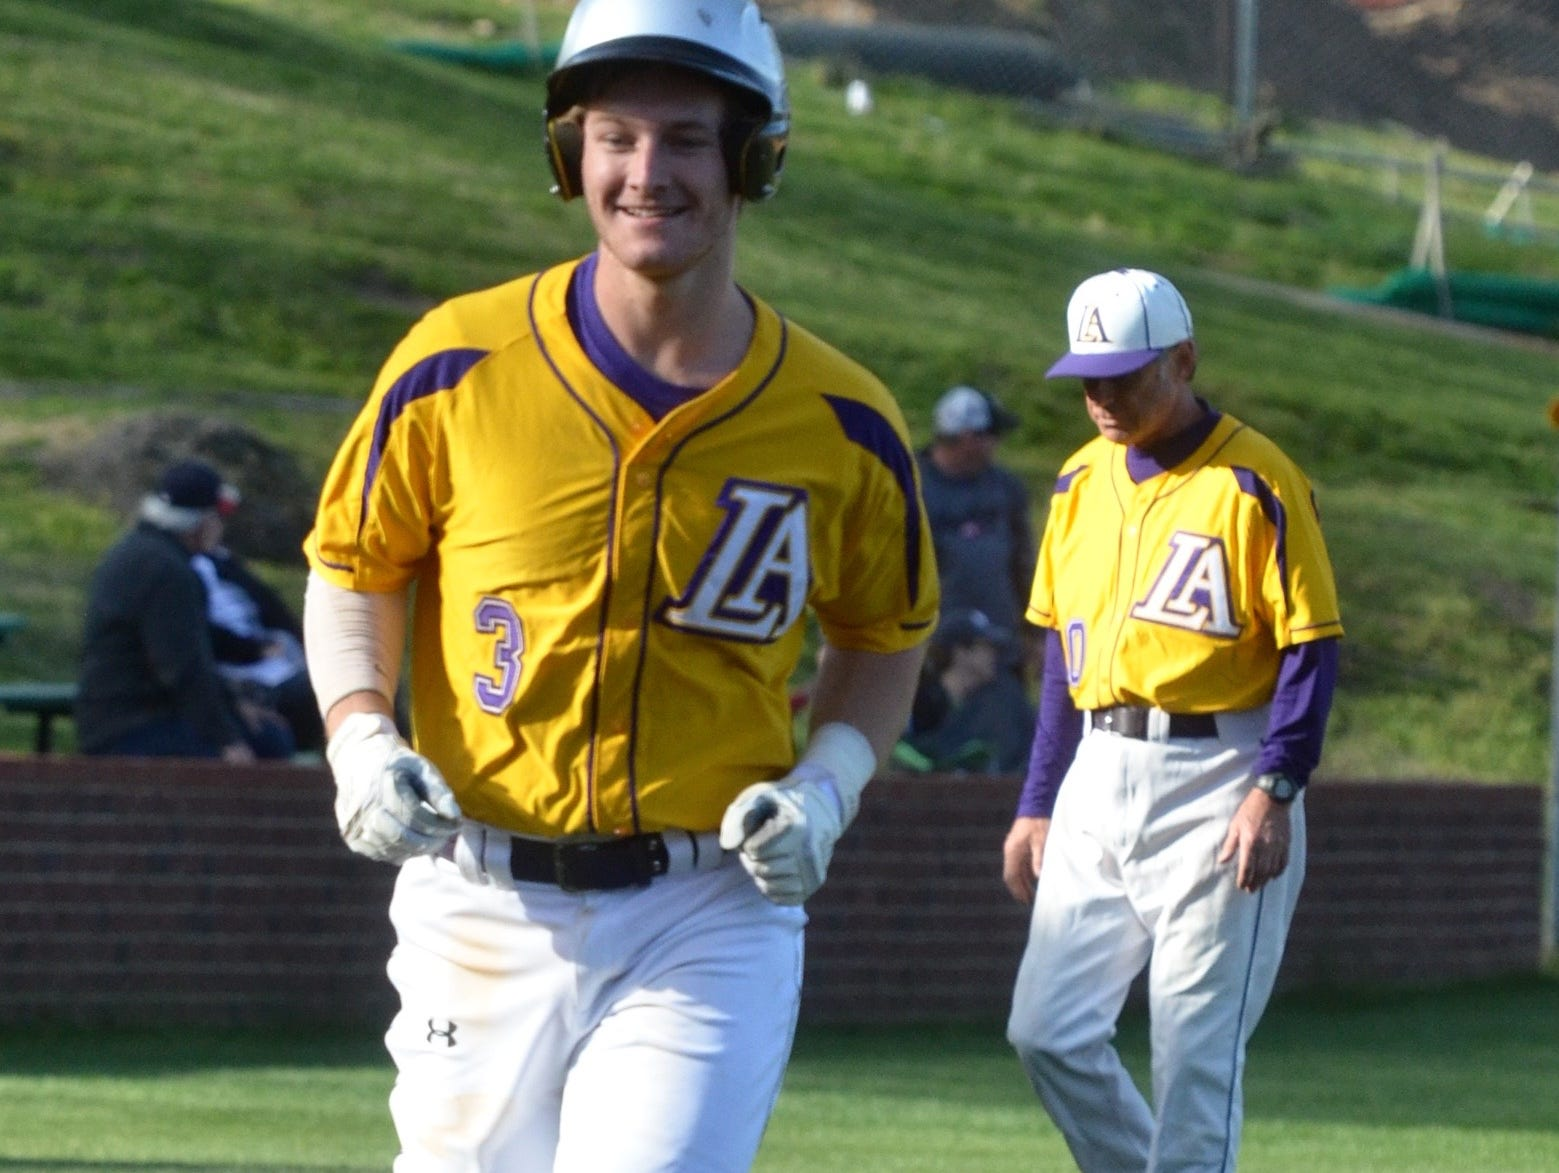 Lipscomb Academy's Andrew Ferrell (3) heads for the plate following his two-run homer during Tuesday's District 10-AA matchup with visiting Hume-Fogg.